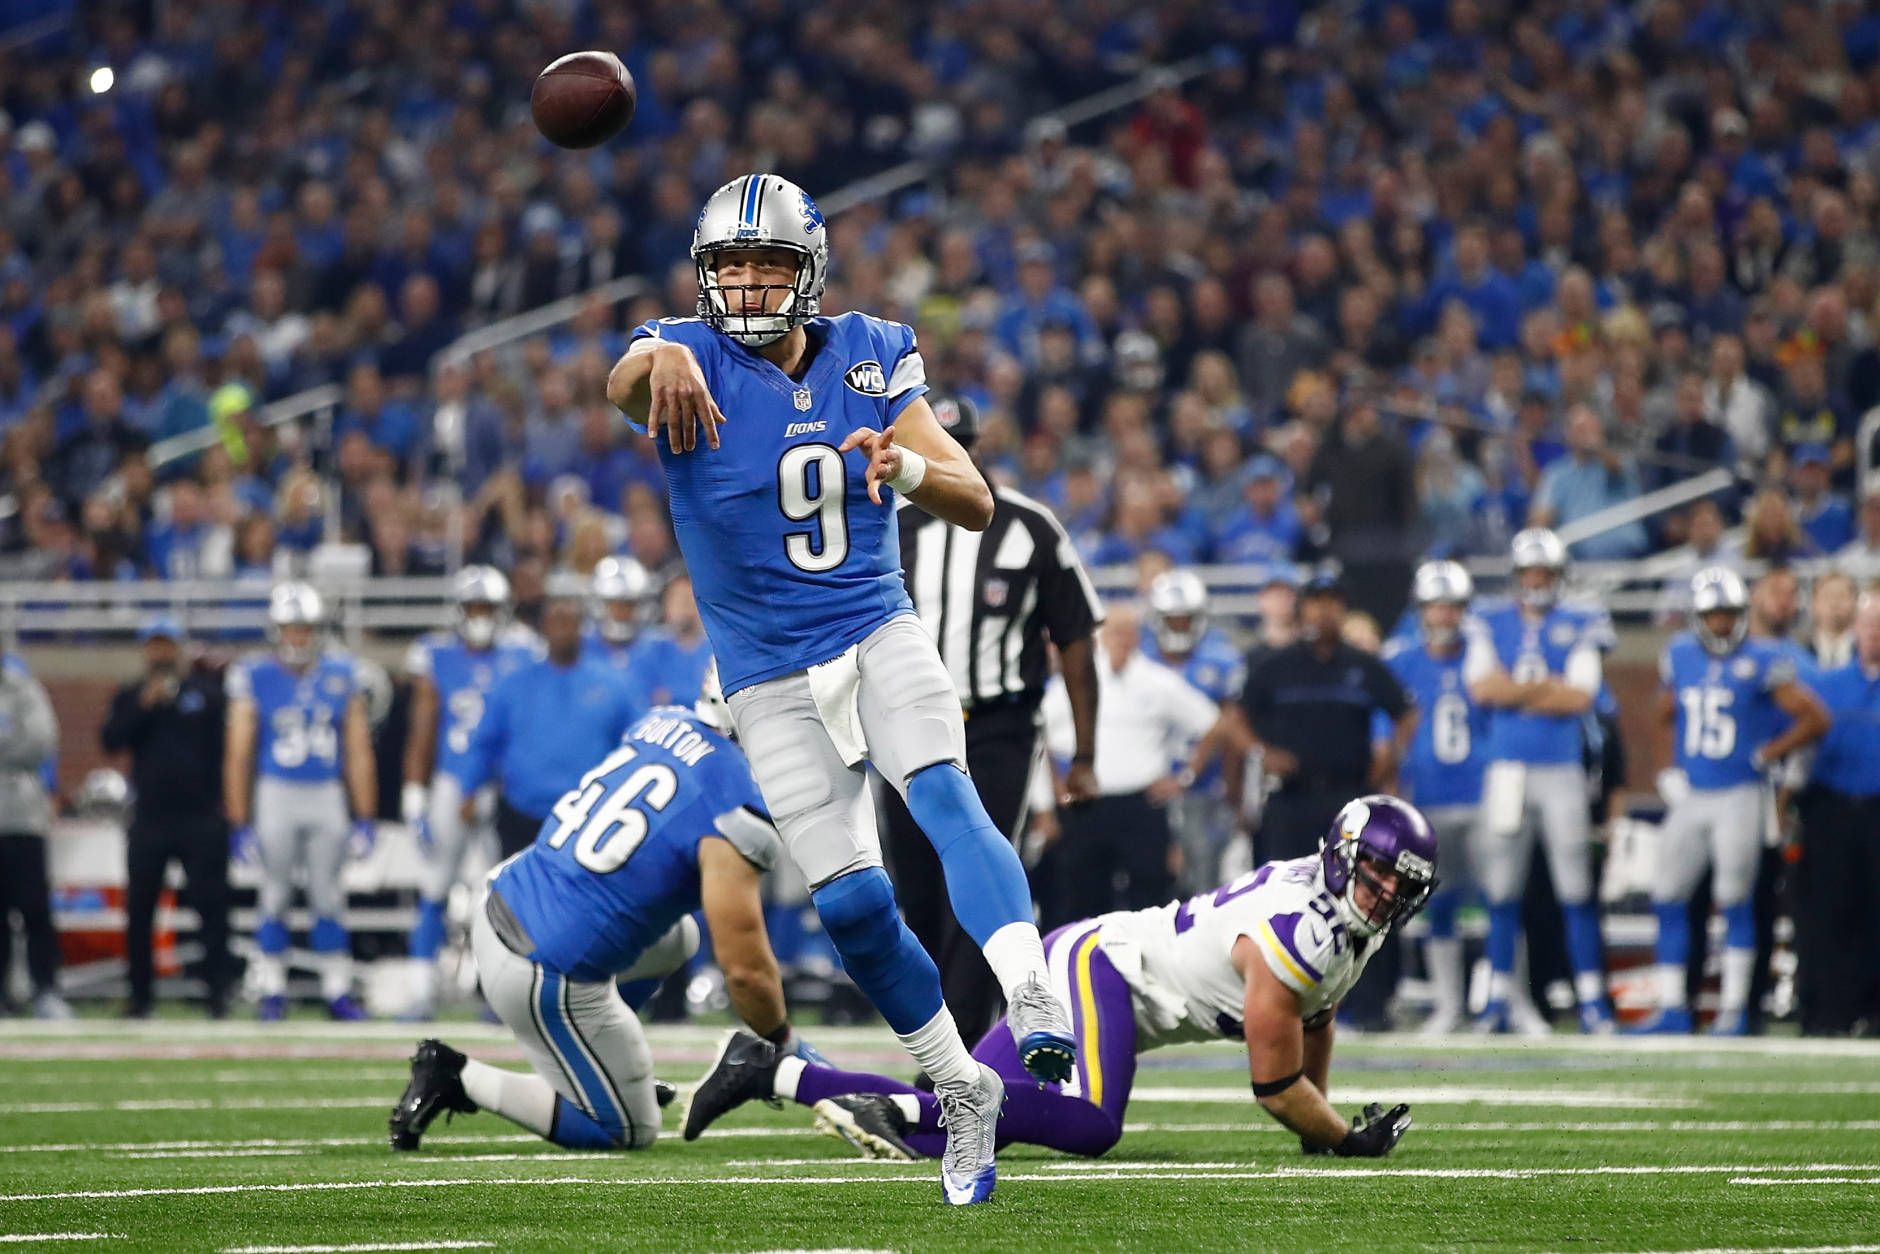 DETROIT.MI - NOVEMBER 24: Quarterback Matthew Stafford (9) of the Detroit Lions passes the ball to Anquan Boldin (80) for a first quarter touchdown against the Minnesota Vikings at Ford Field on November 24, 2016 in Detroit, Michigan. (Photo by Gregory Shamus/Getty Images)